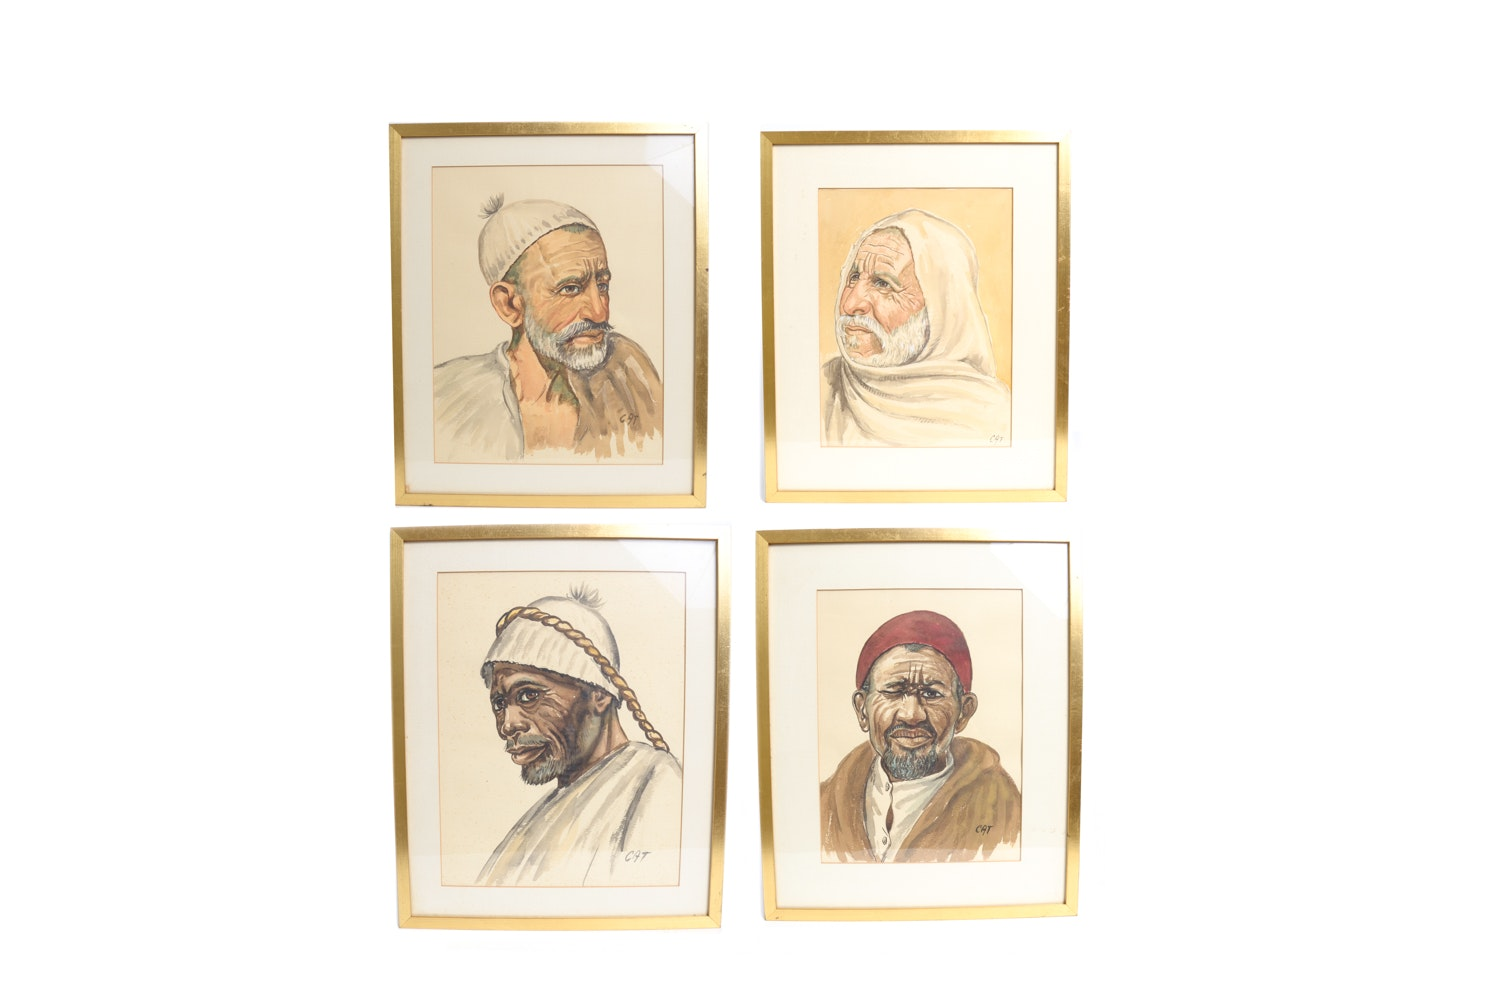 Series of Watercolor Portraits